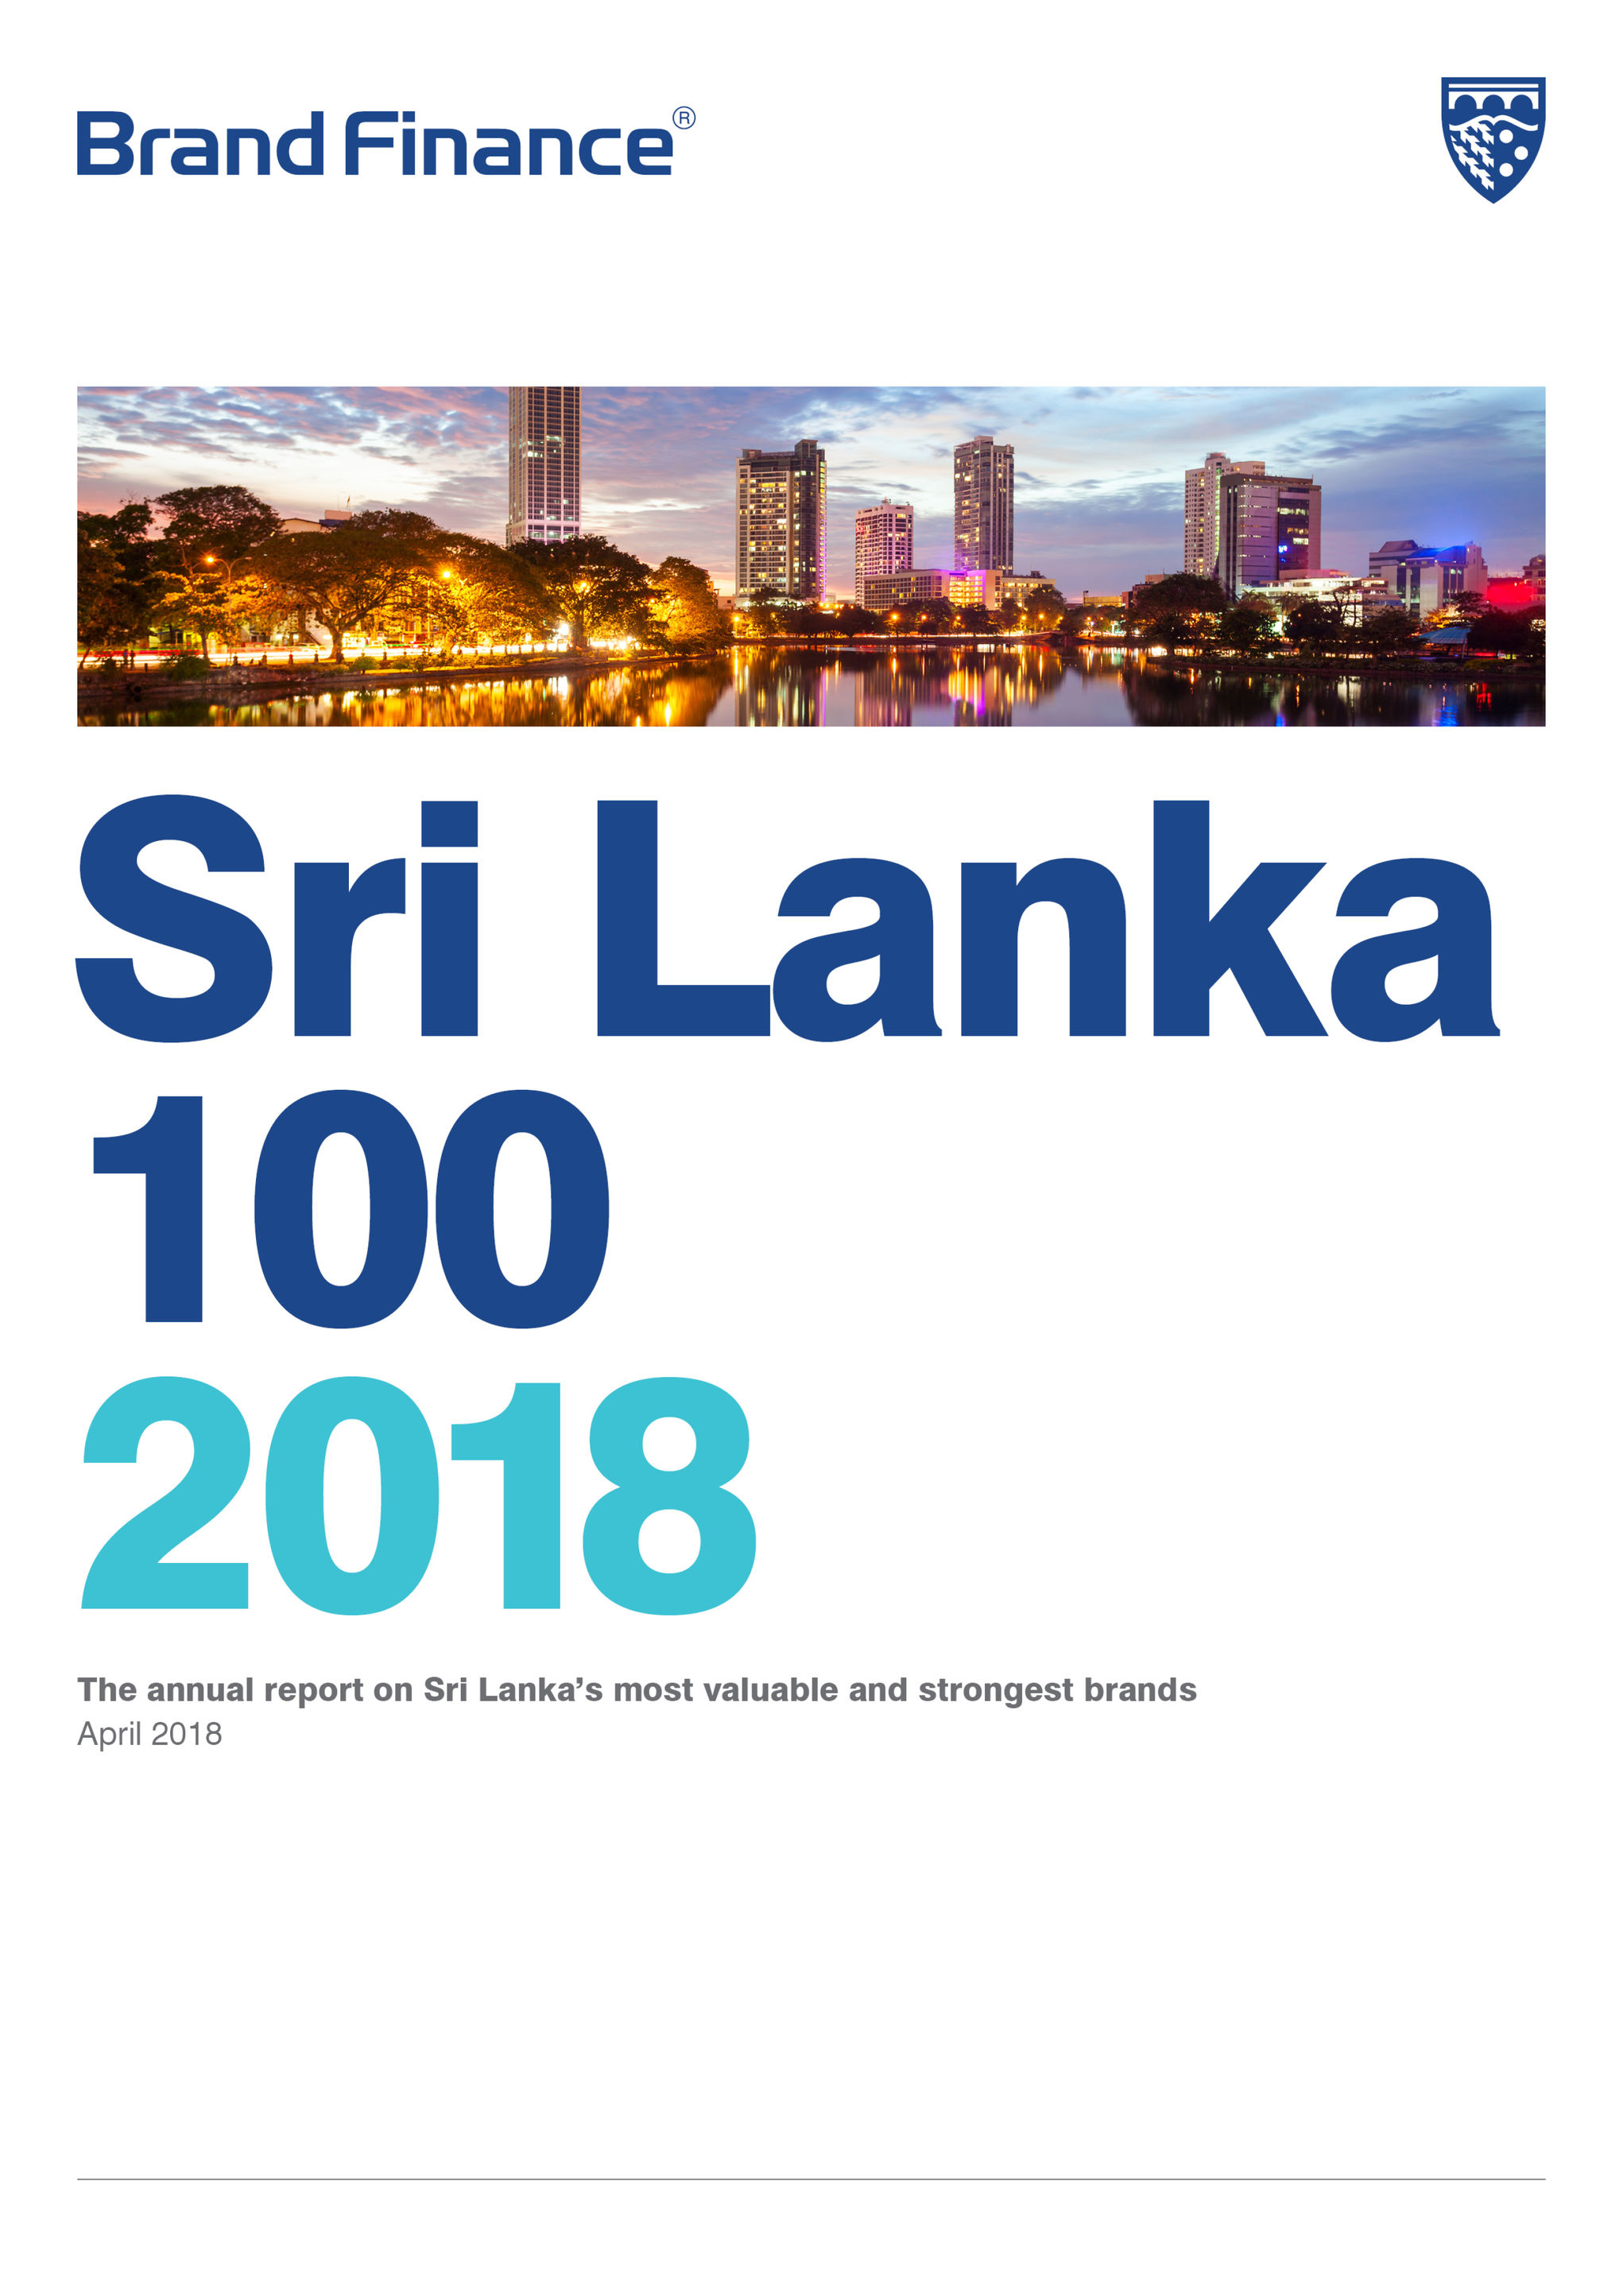 Brand Finance Sri Lanka 100 2018